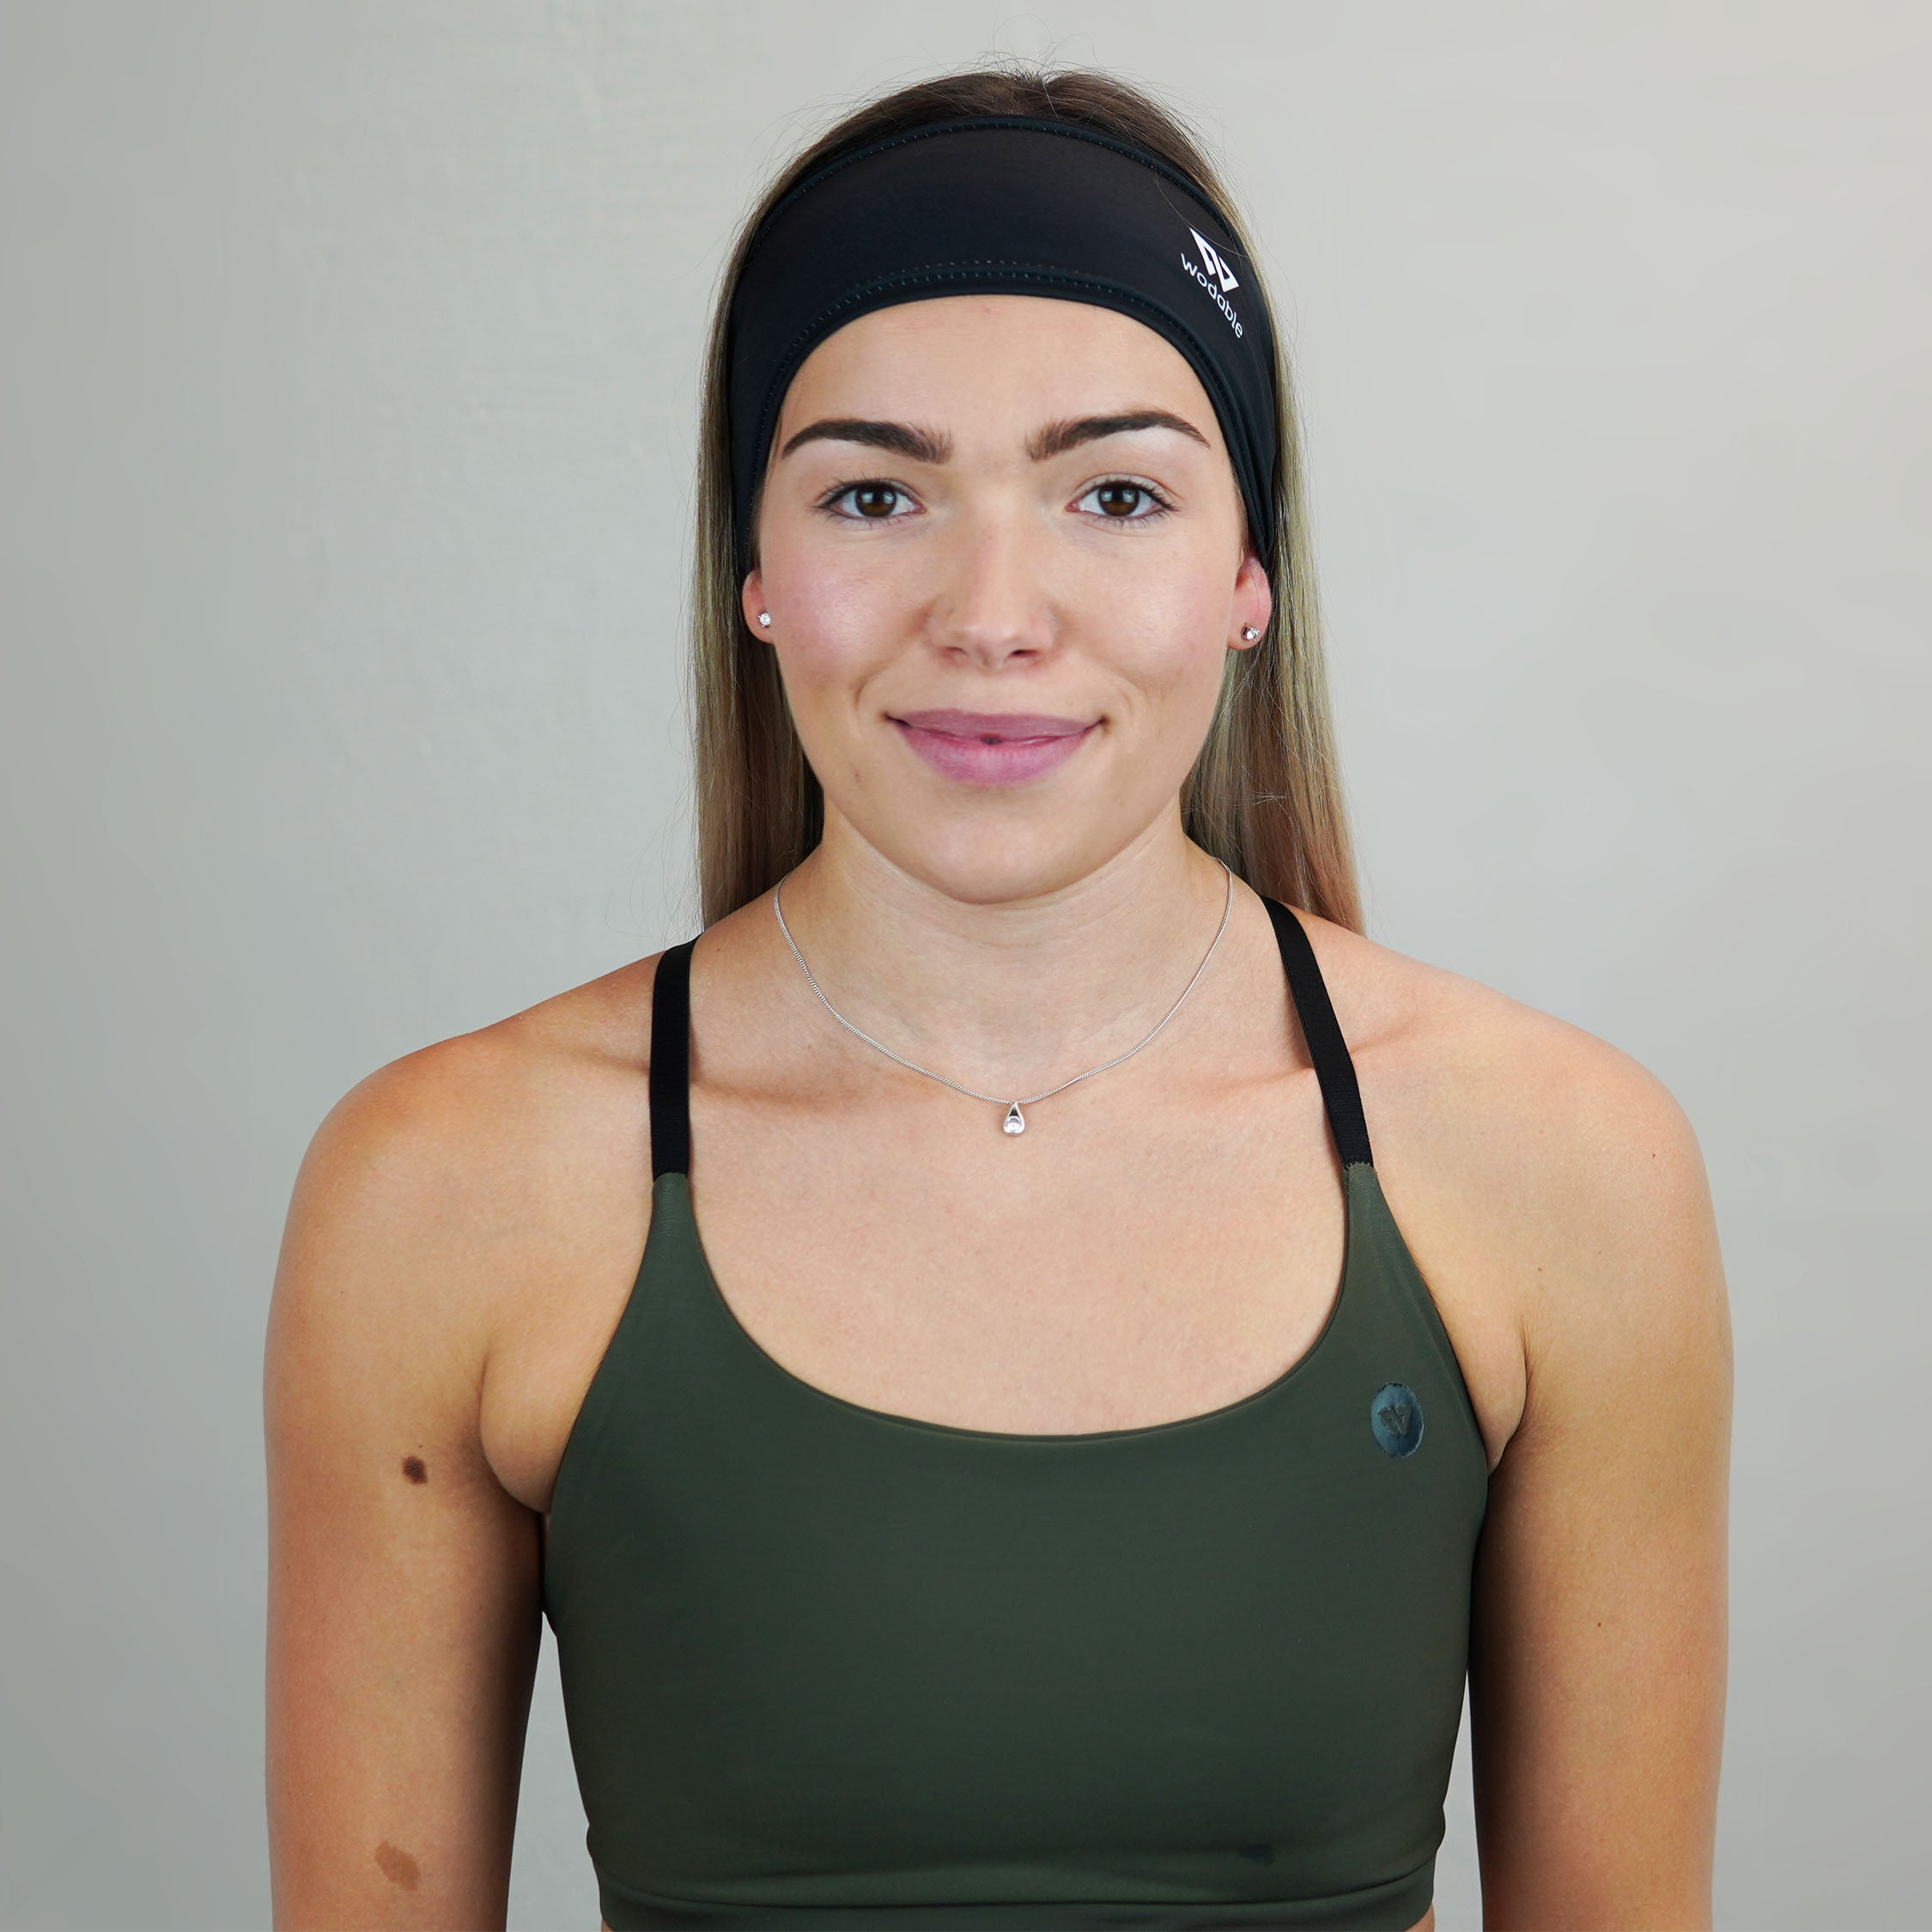 All Black Headband